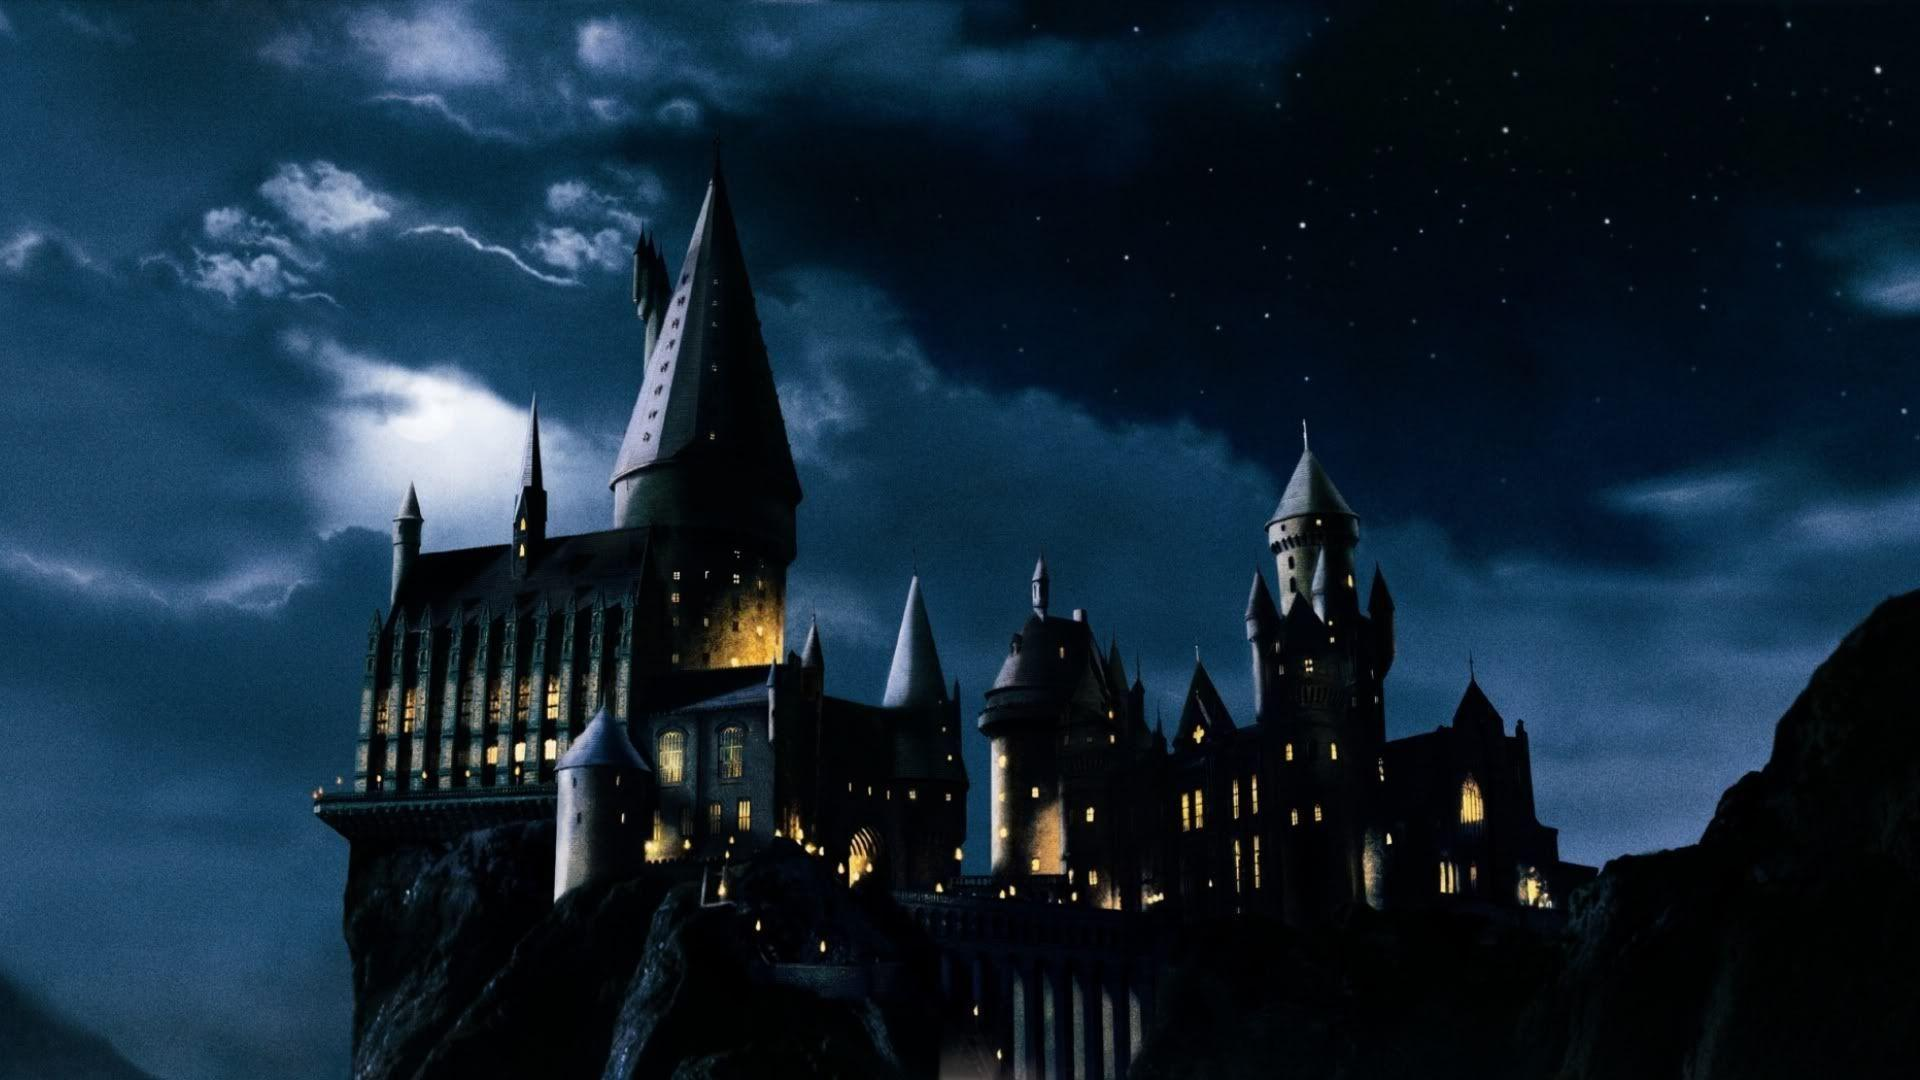 Hd wallpaper harry potter - Harry Potter Wallpaper Background Hd Wallpapers Pictures Hd